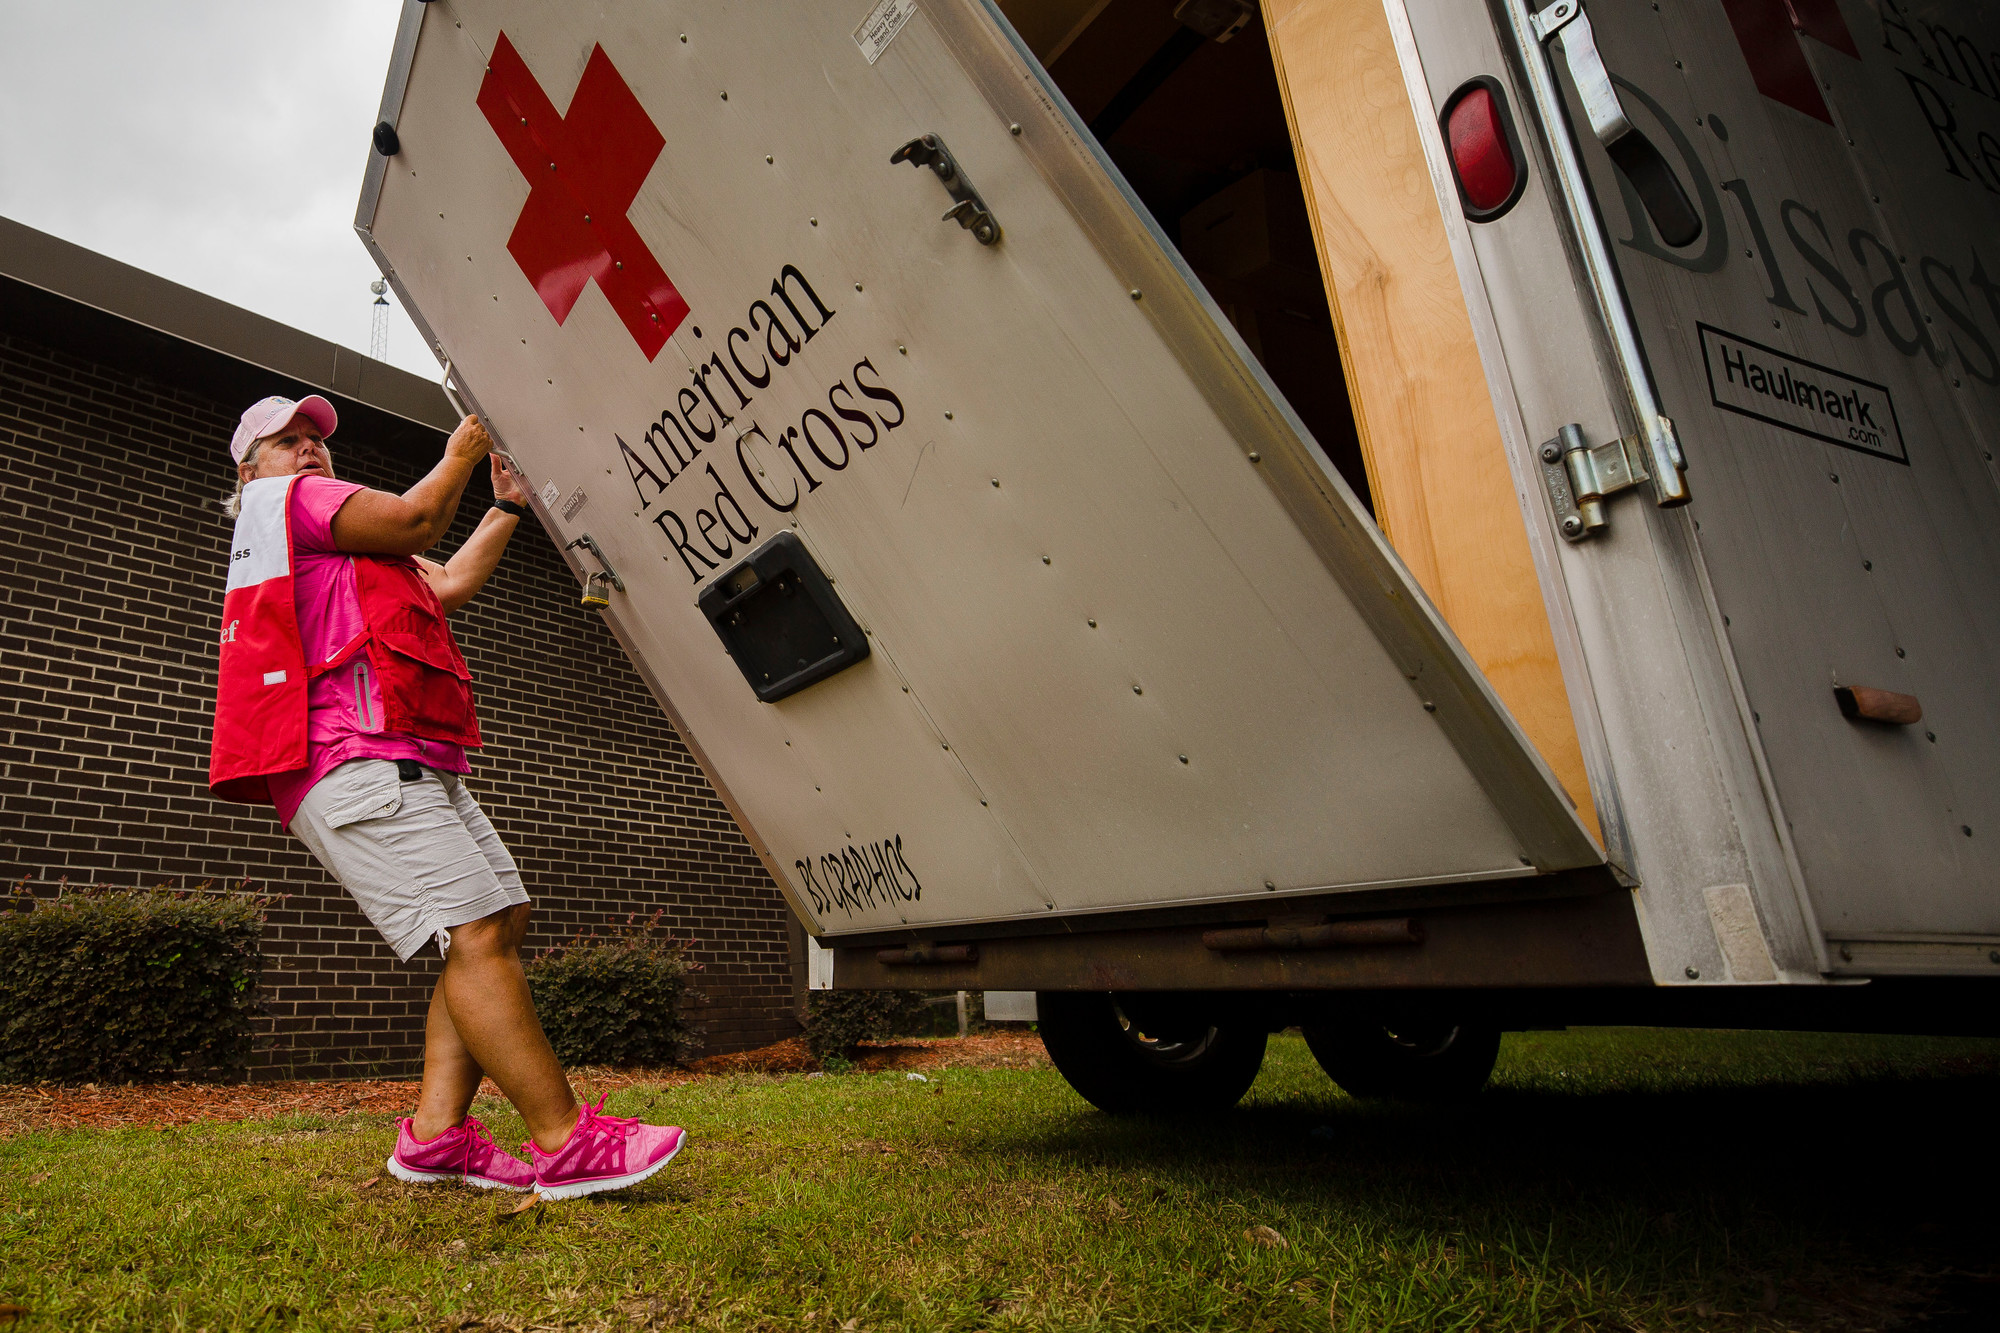 Patty Grimsley, a Red Cross volunteer, opens a trailer with cots and blankets outside of Mayewood Middle School on Thursday afternoon.